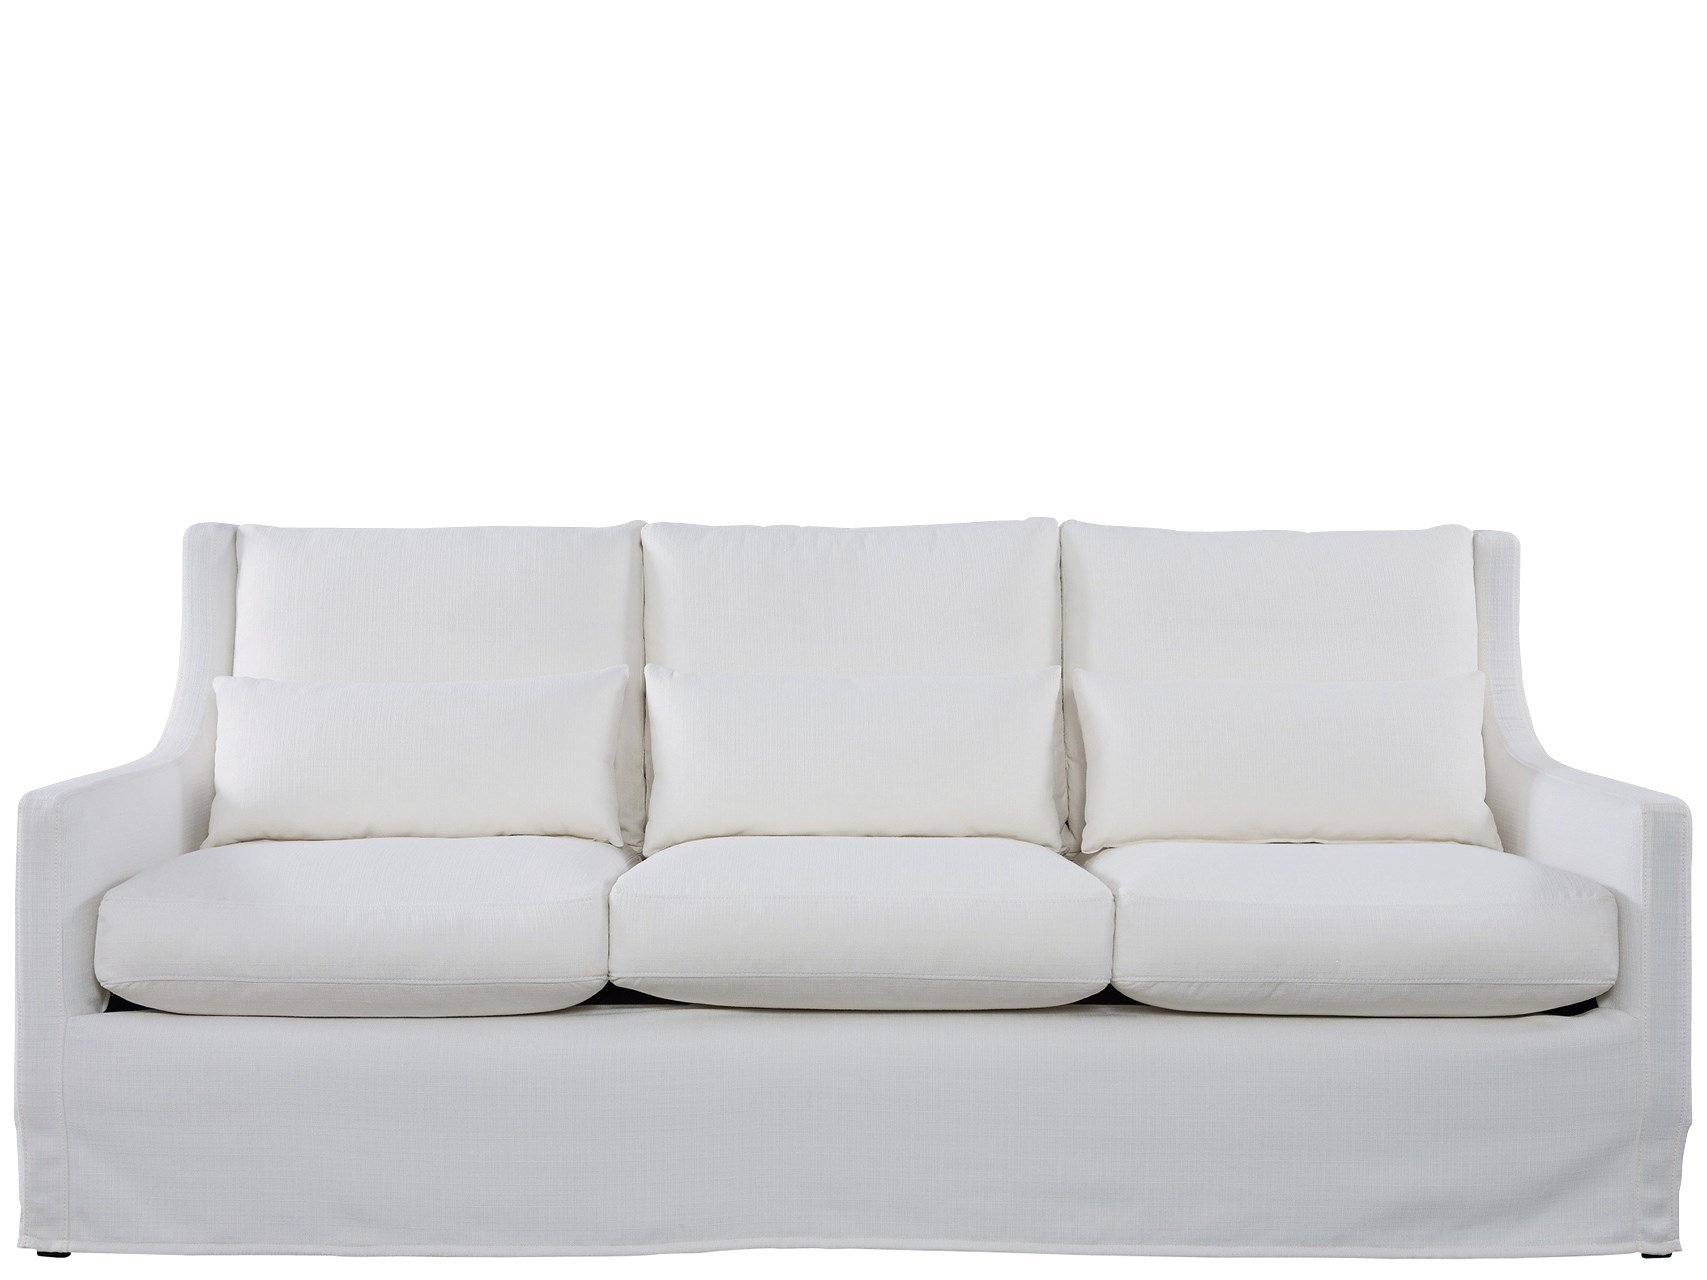 Sloane Sofa - Special Order